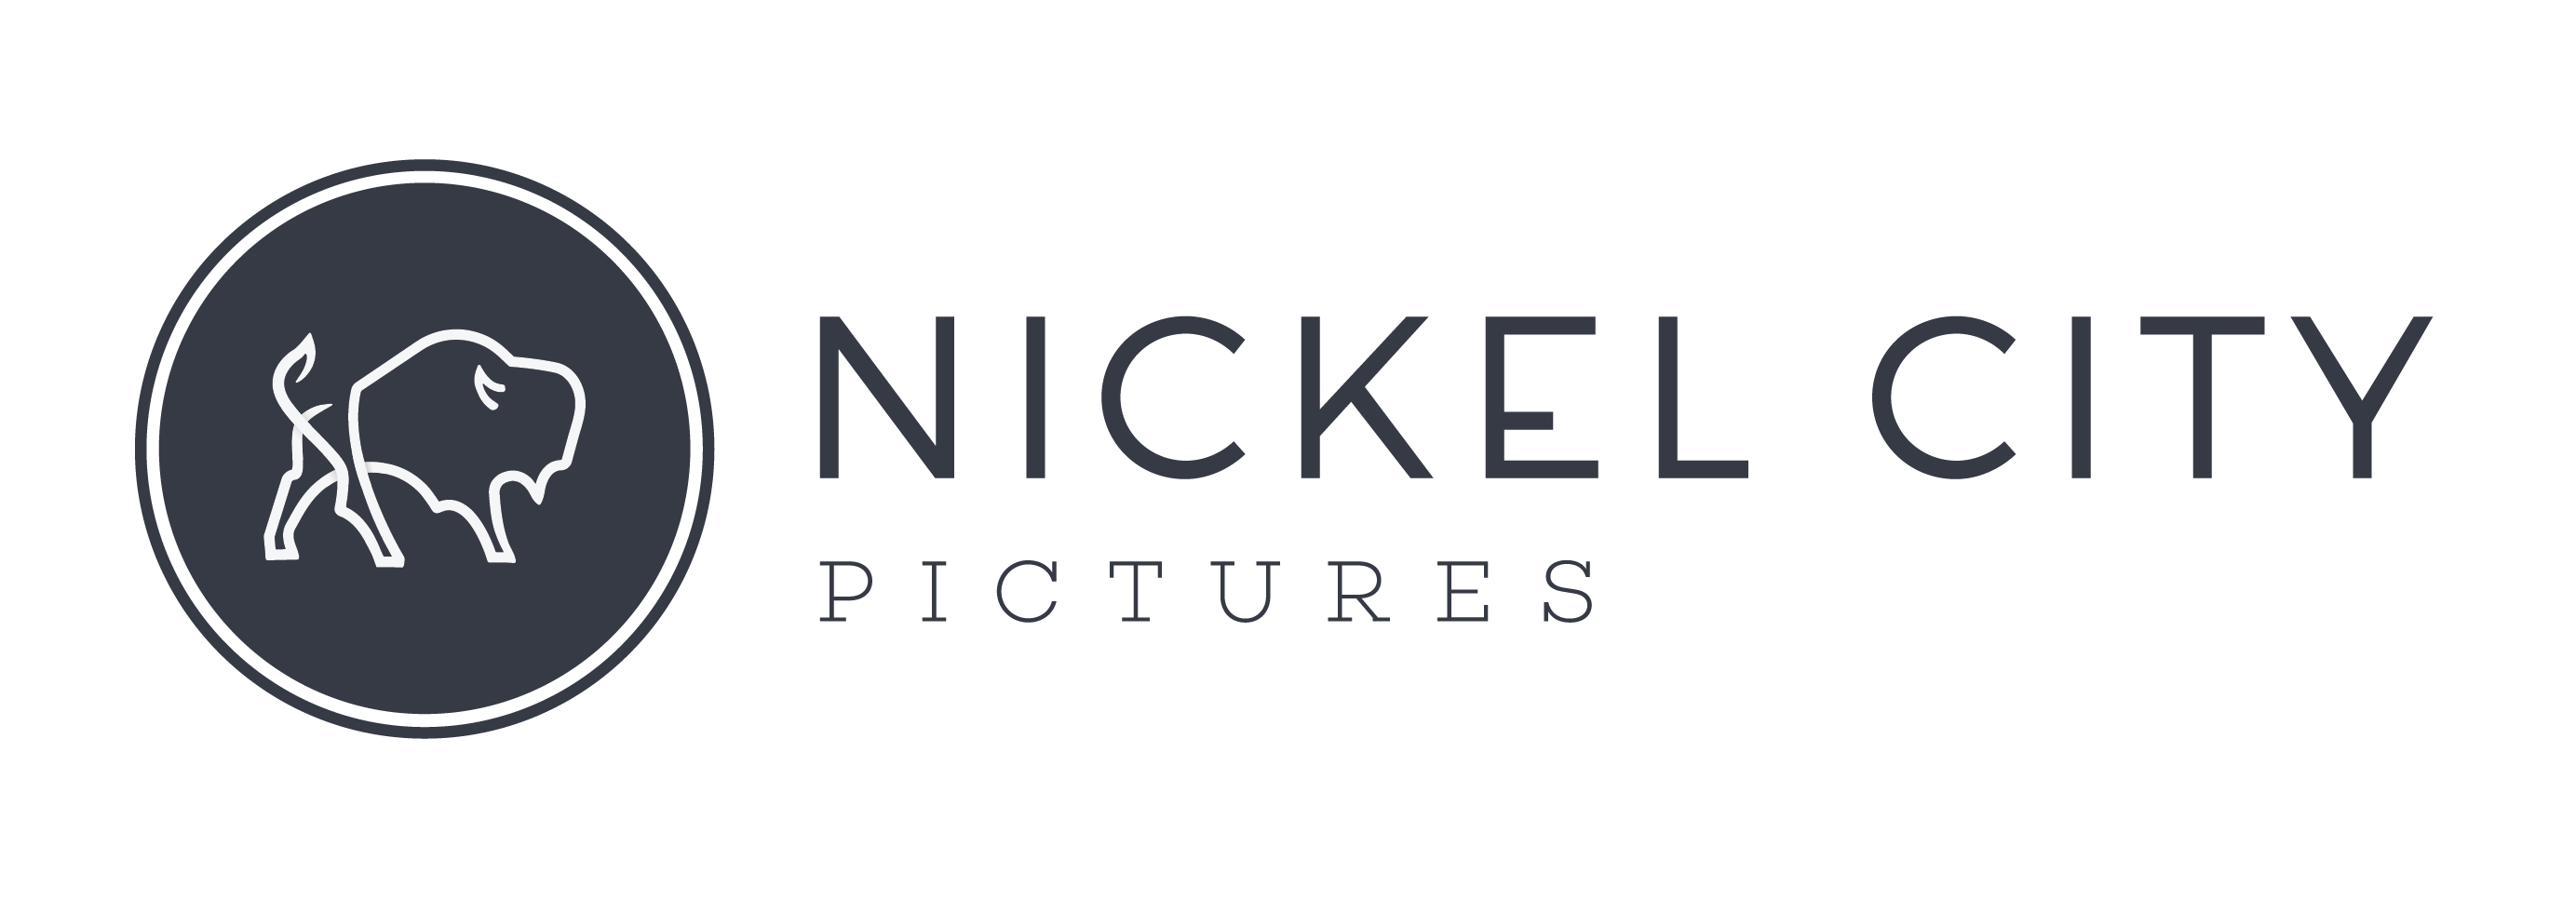 Nickel City logo_dark_blue